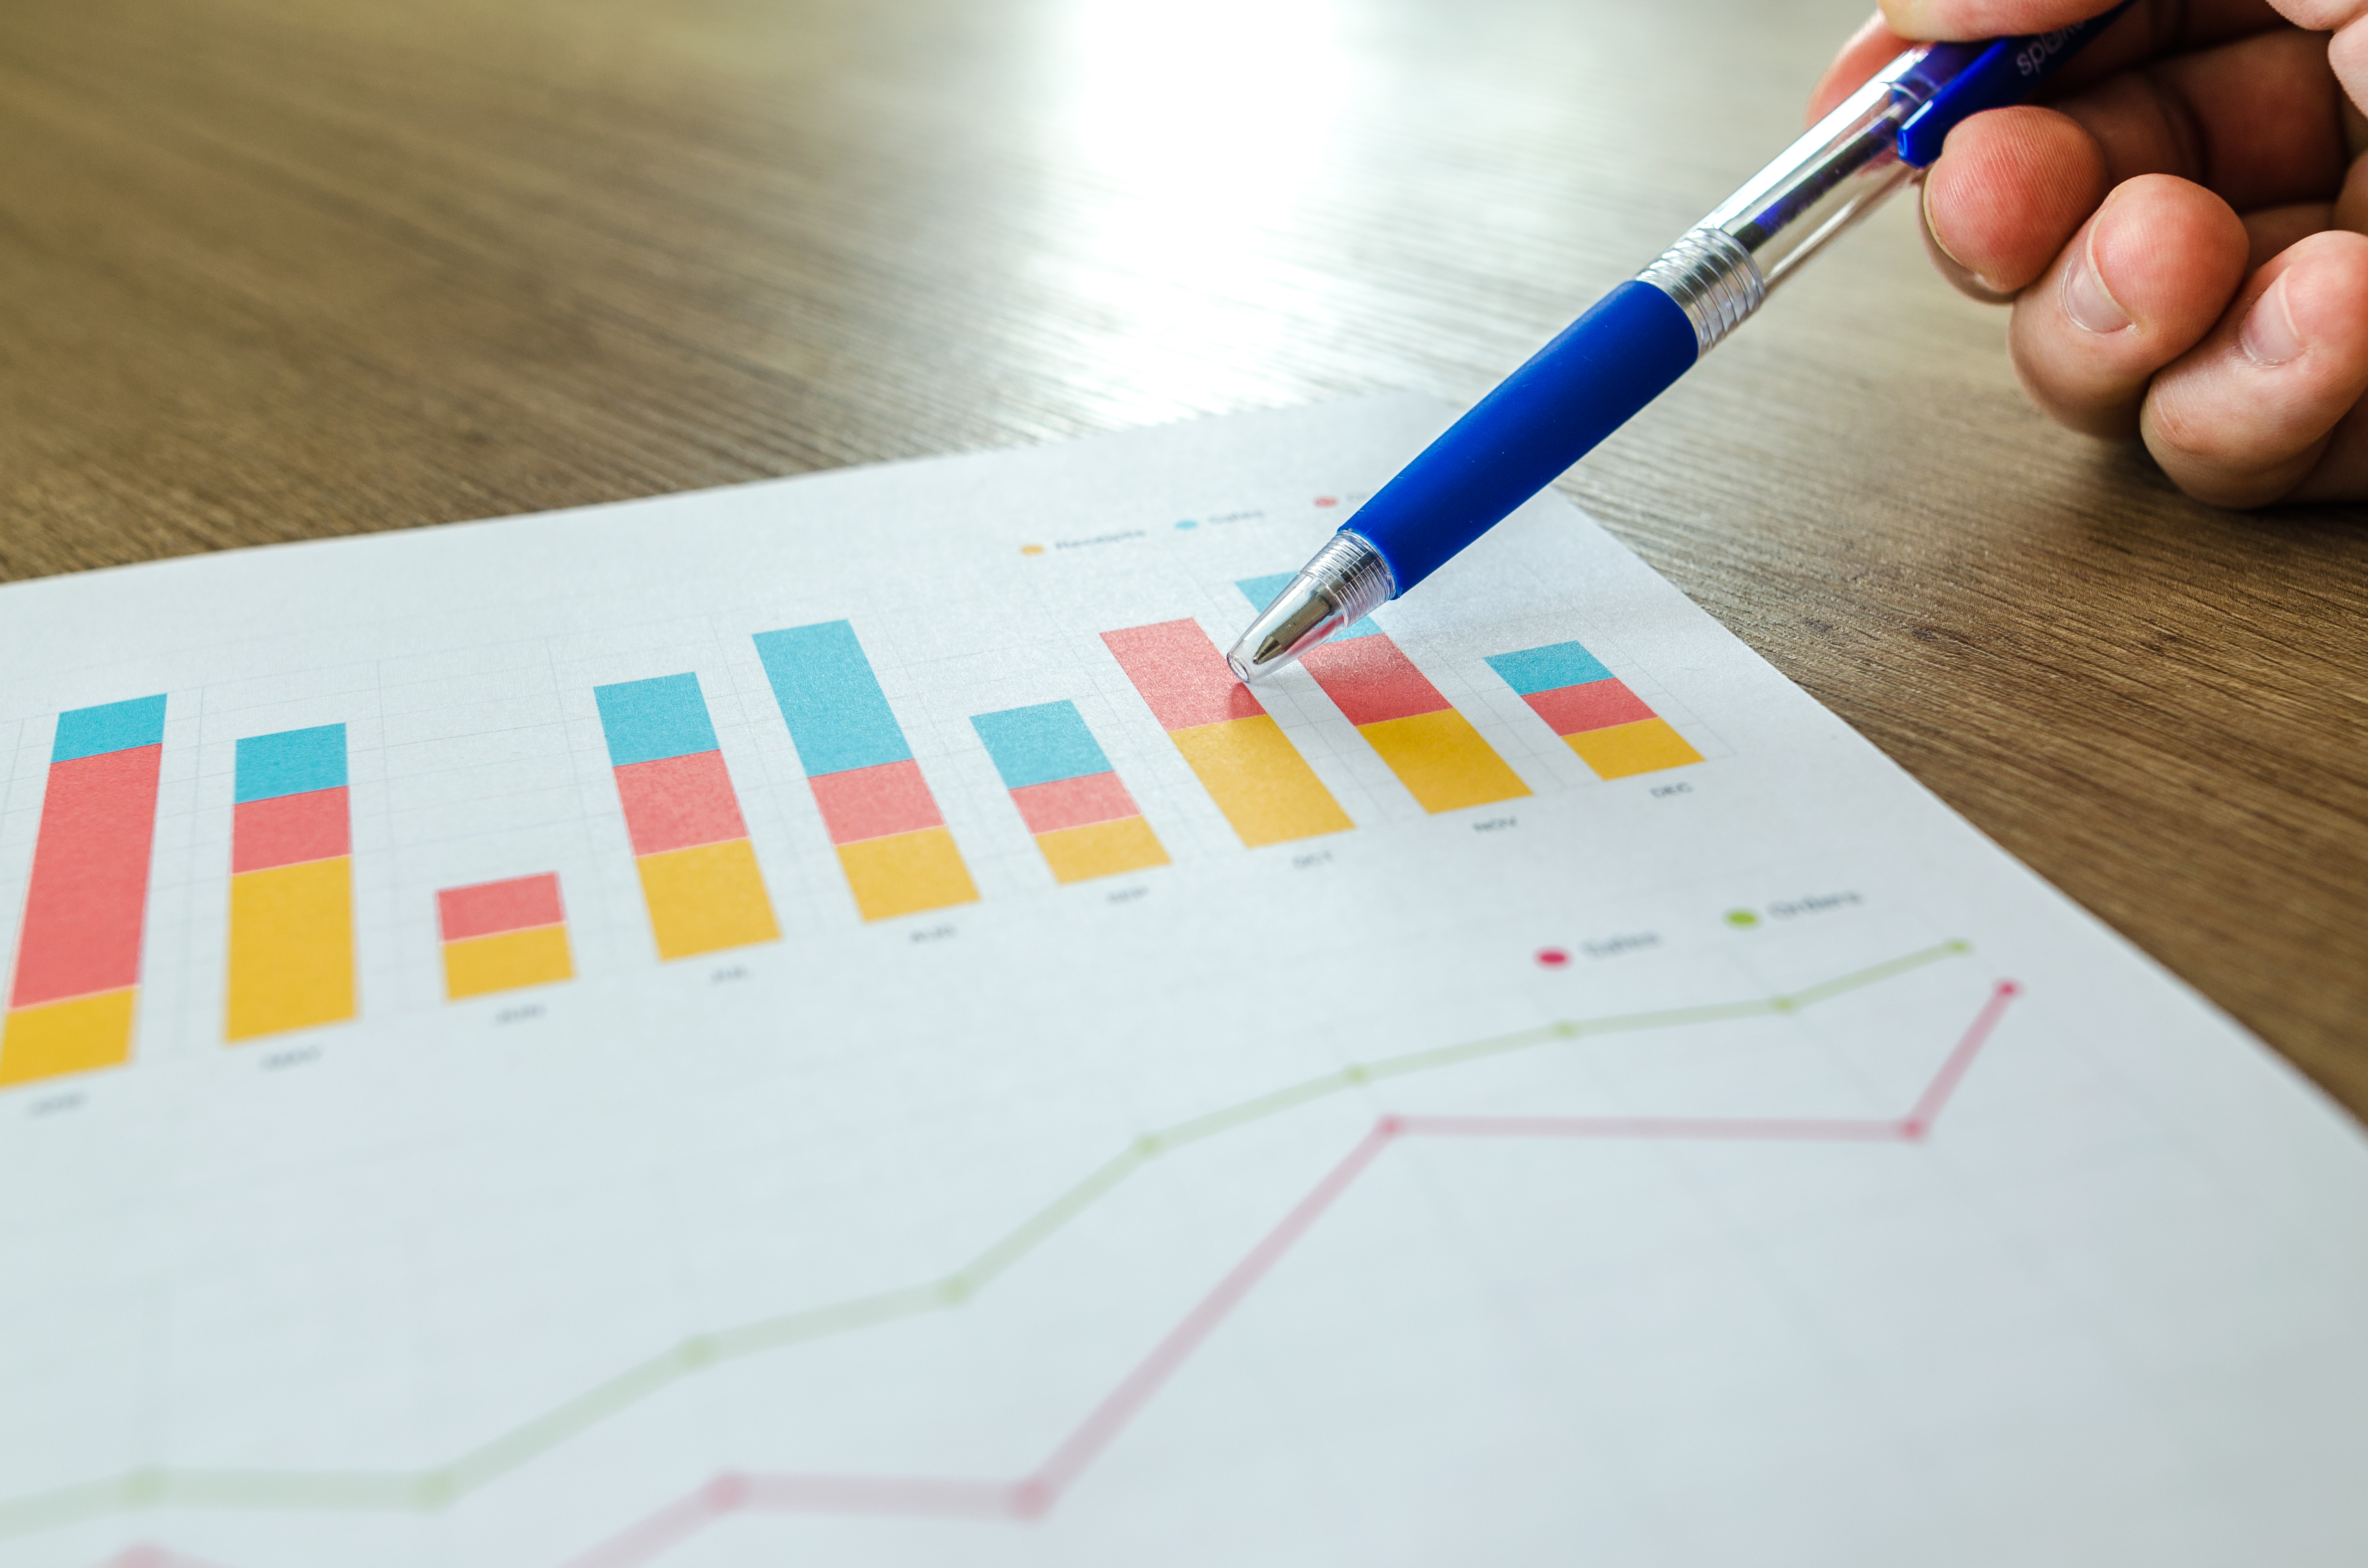 A report showing various metrics used to measure business wellbeing.